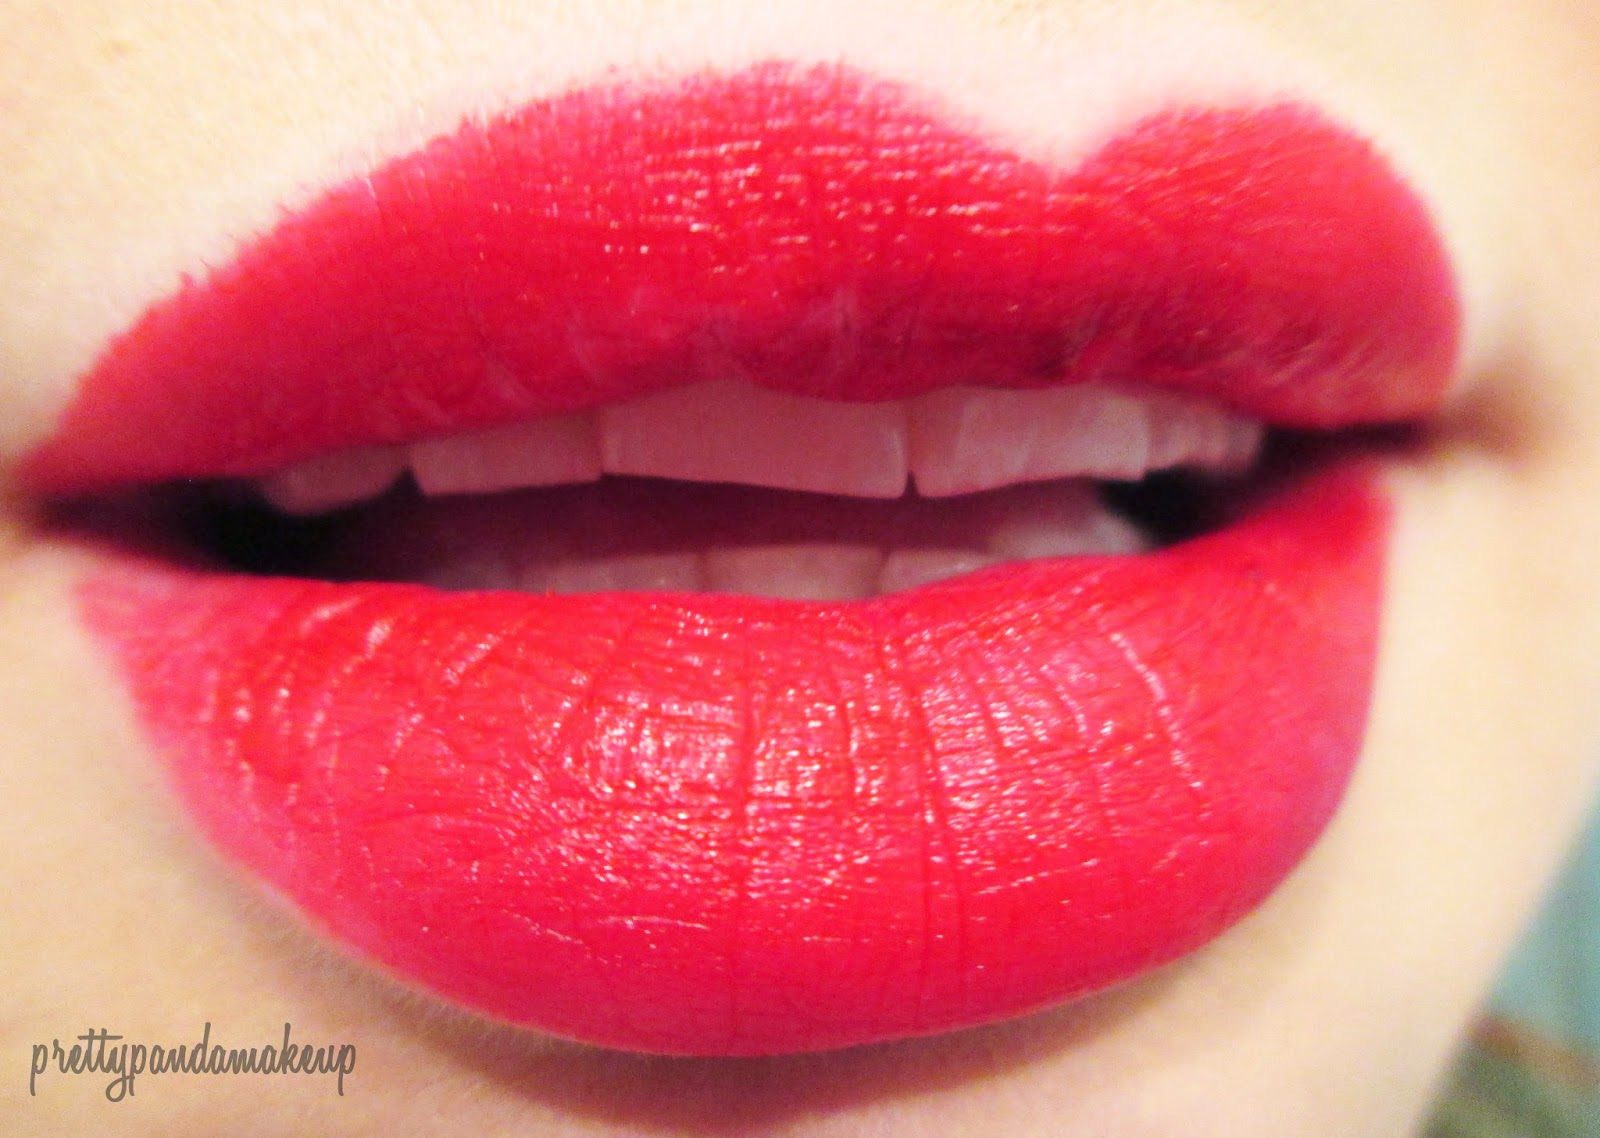 NYX Soft Matte Lip Cream in Monte Carlo lip swatch